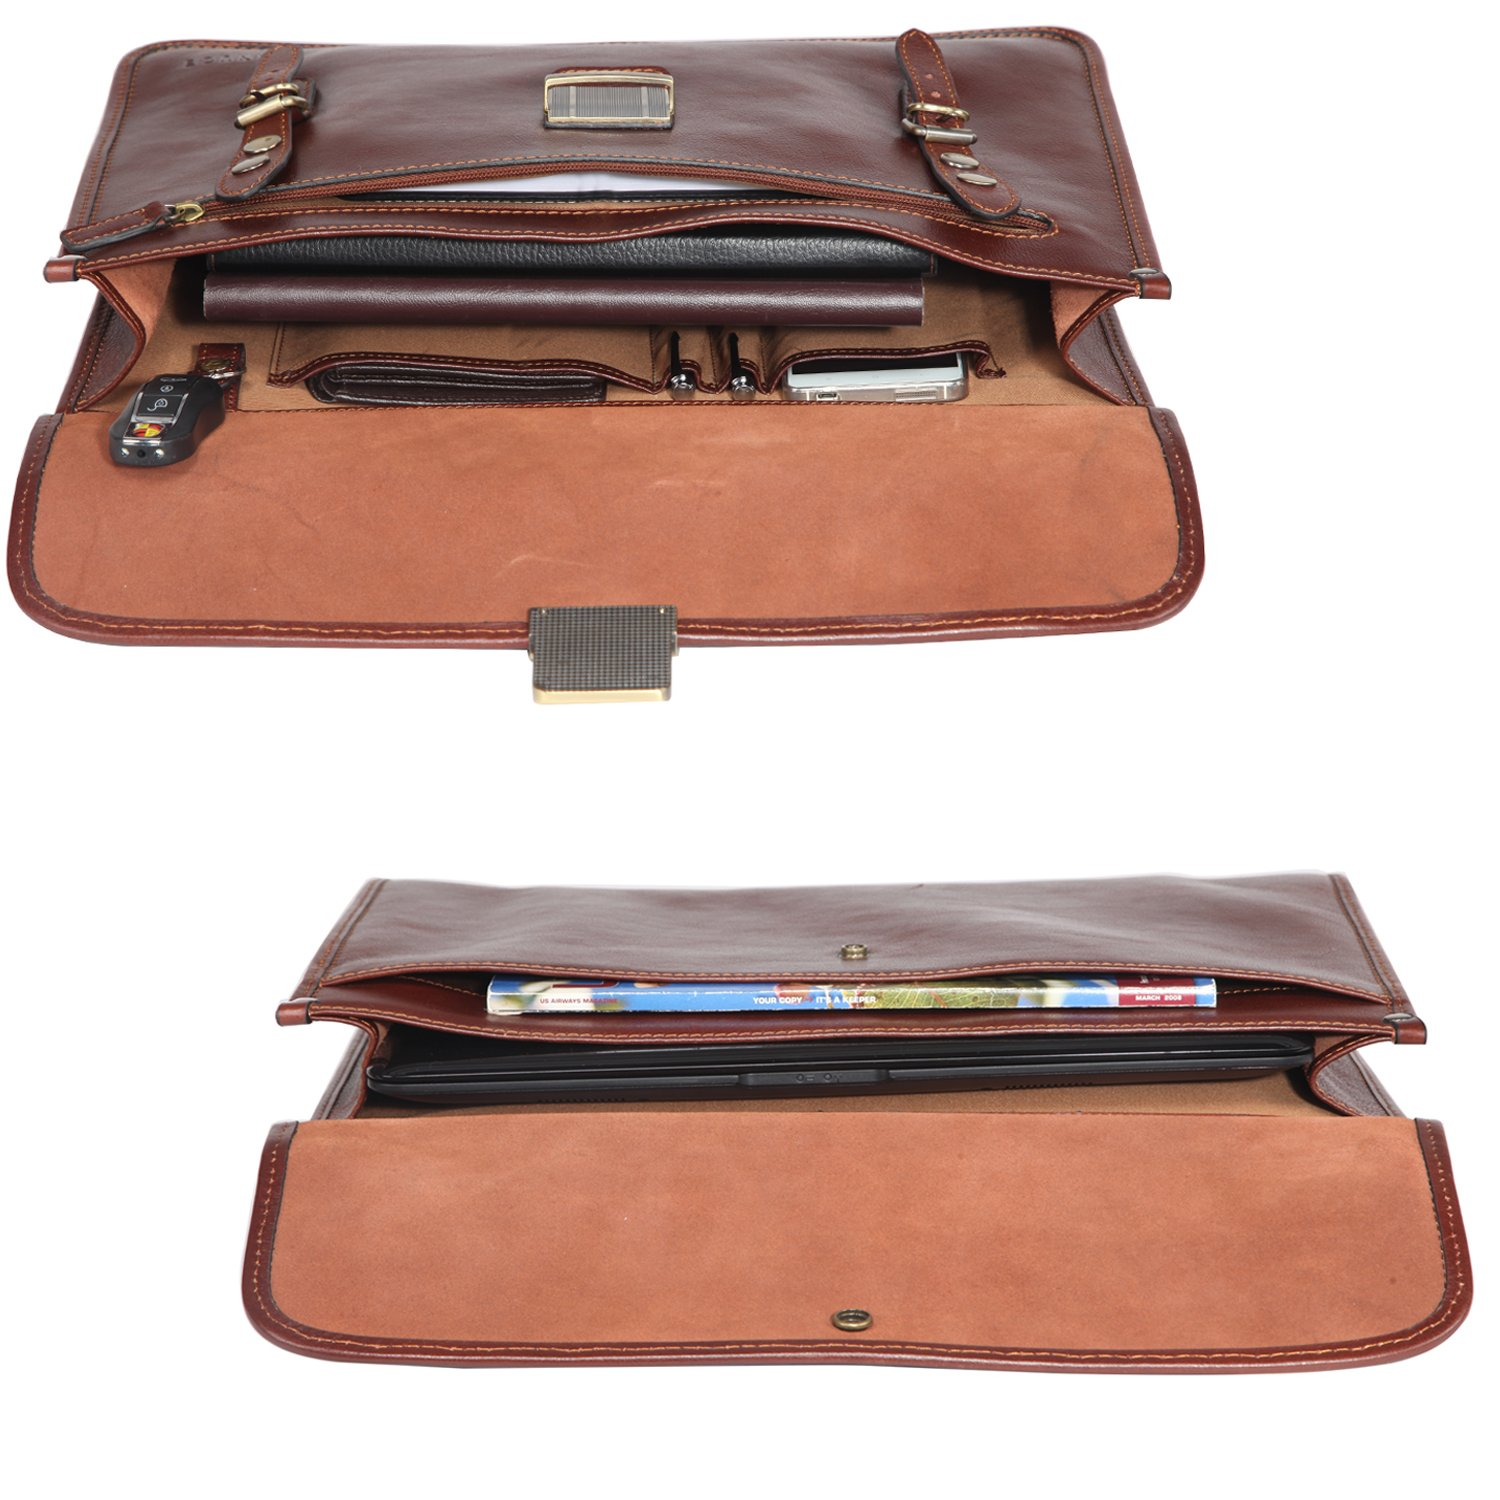 Banuce Mens Italian Leather Flapover Briefcase Tote 2way Business Laptop Messenger Bag Attache Case by Banuce (Image #7)